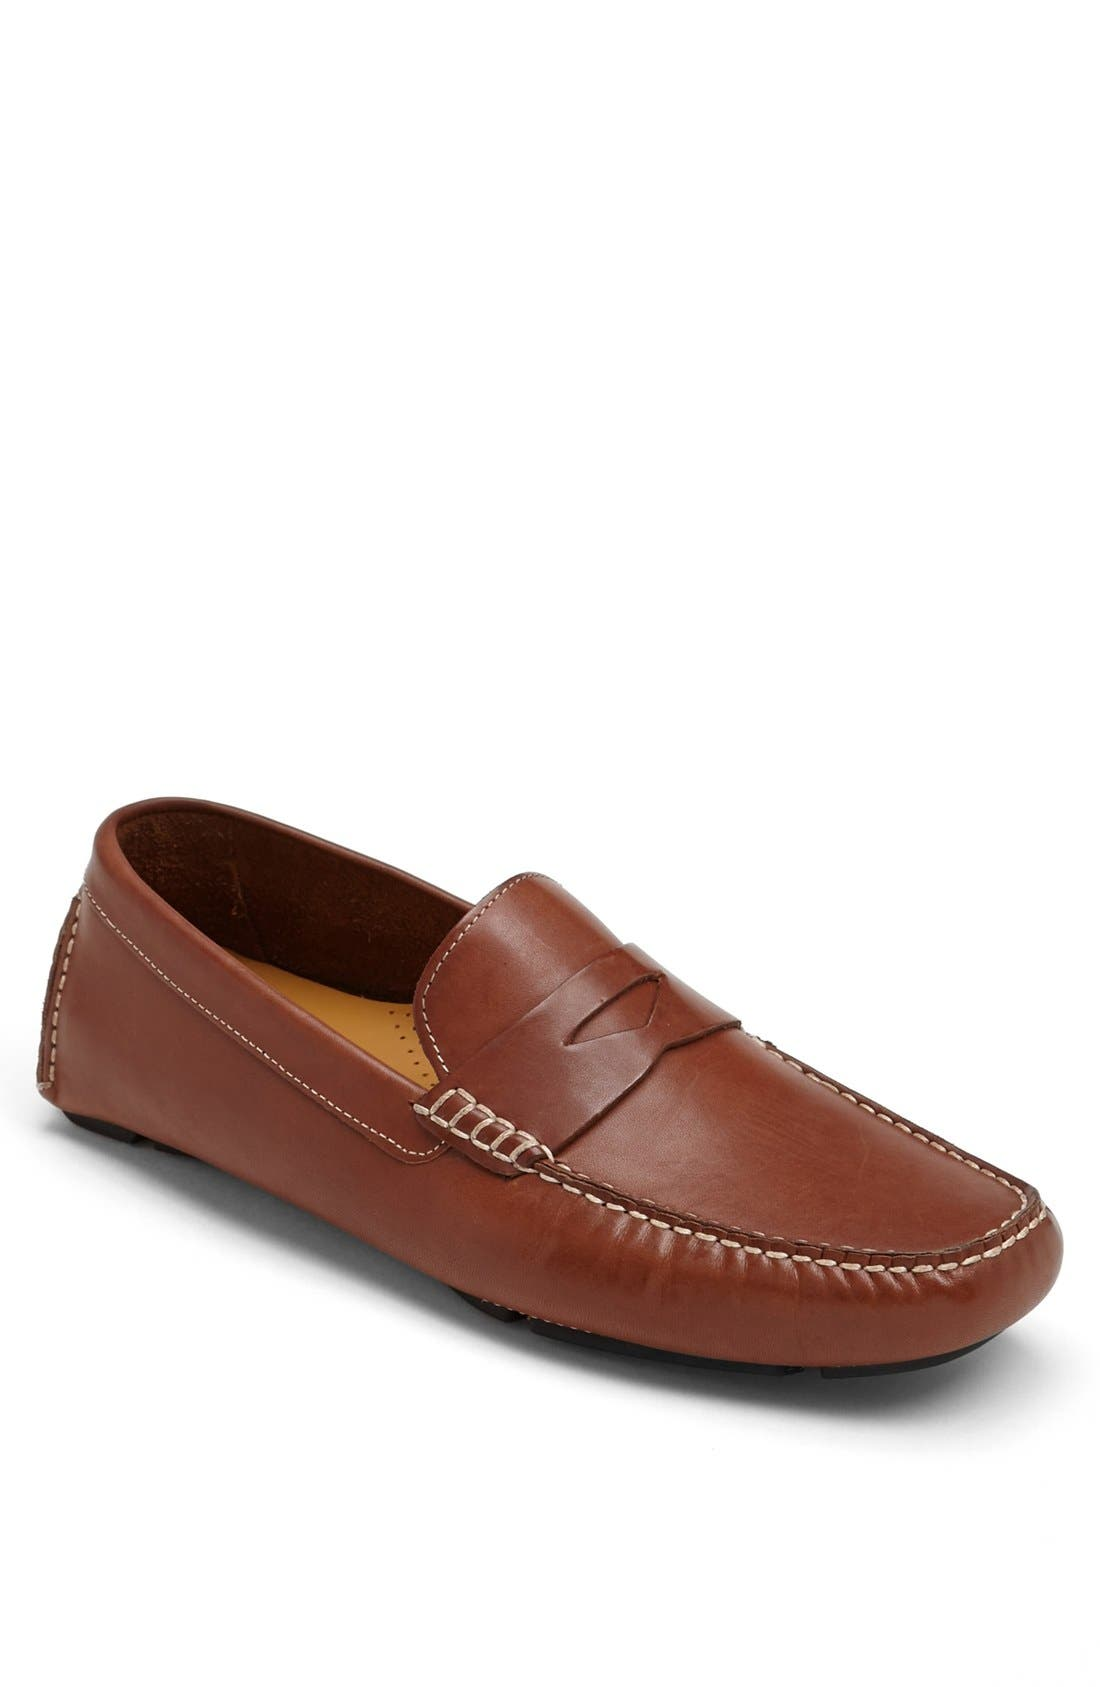 Main Image - Cole Haan 'Howland' Penny Loafer   (Men)